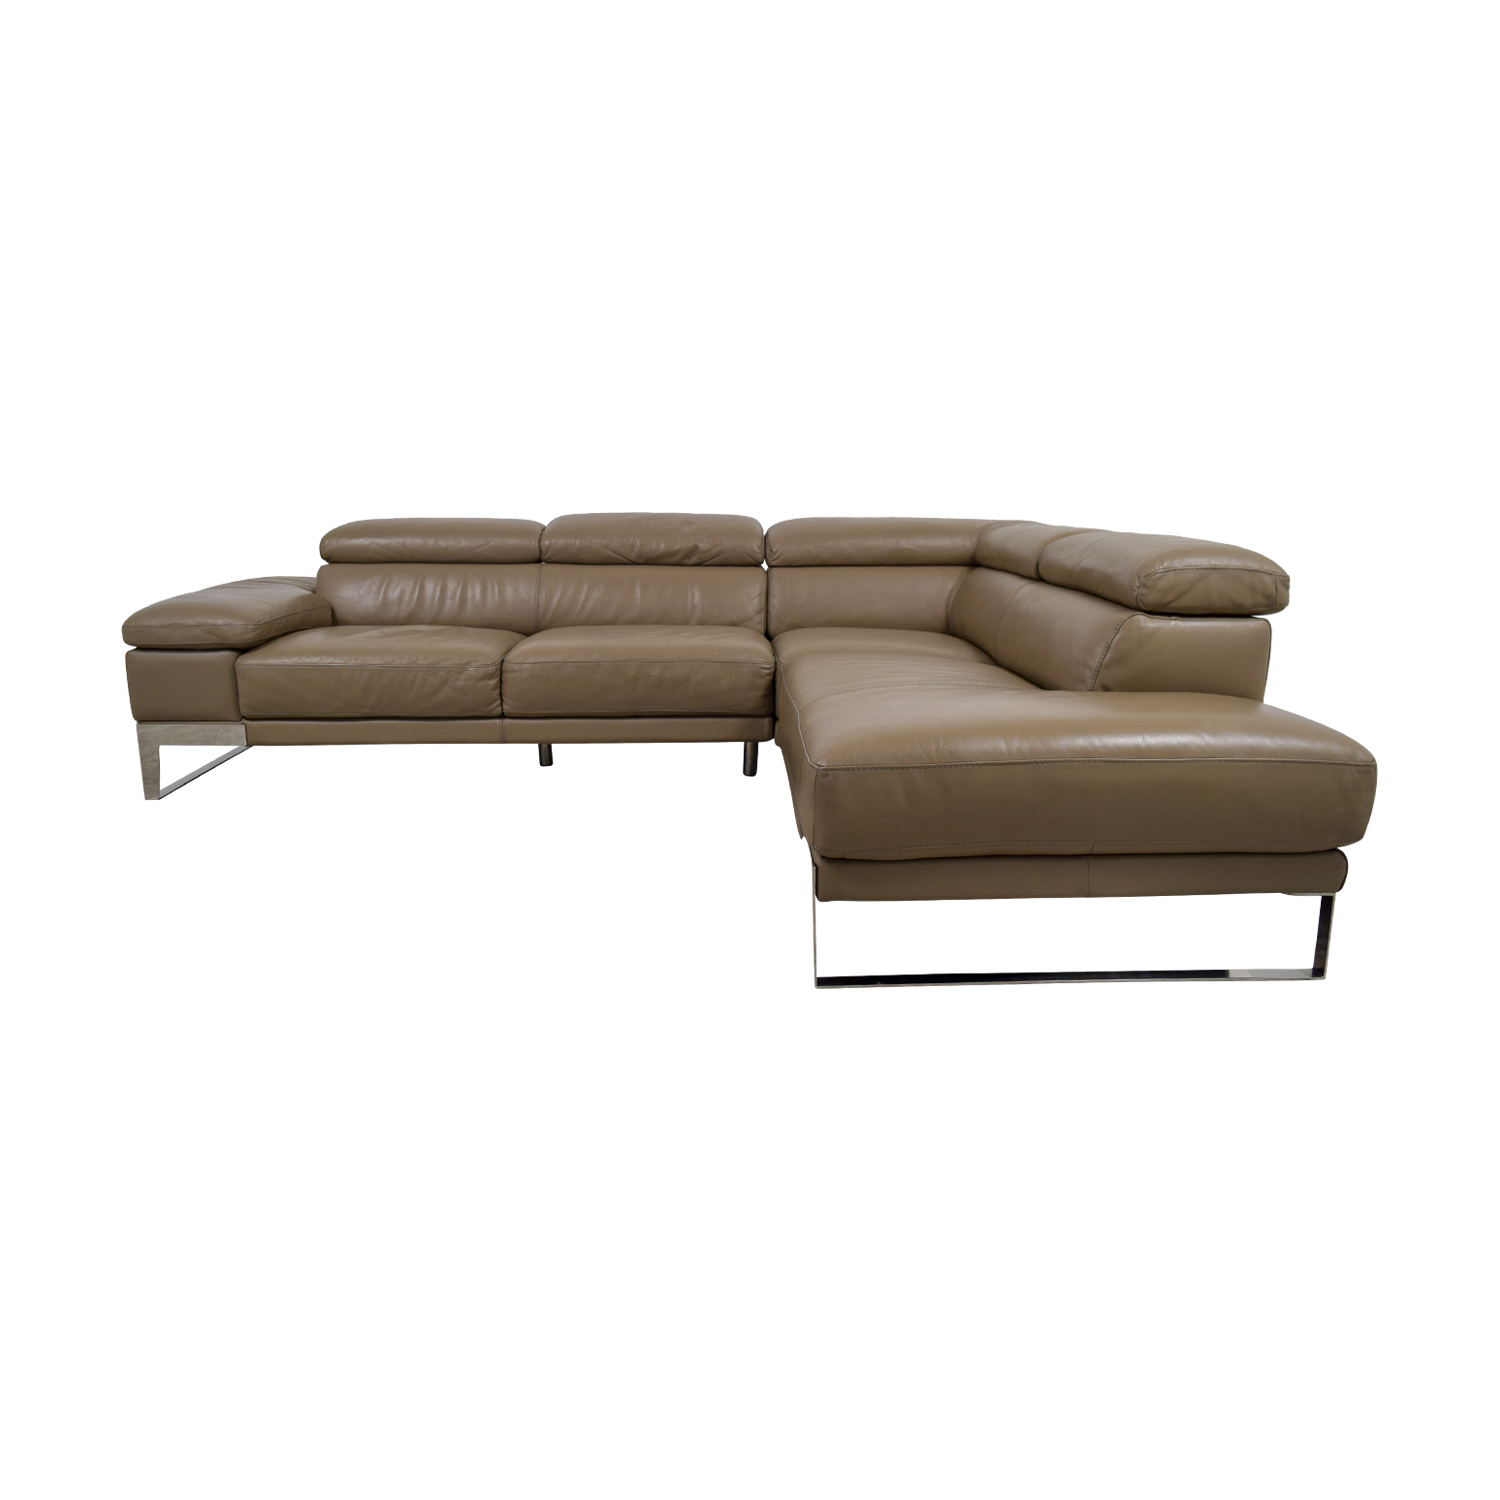 Jensen & Lewis Jensen & Lewis Tan Leather L-Shaped Sectional